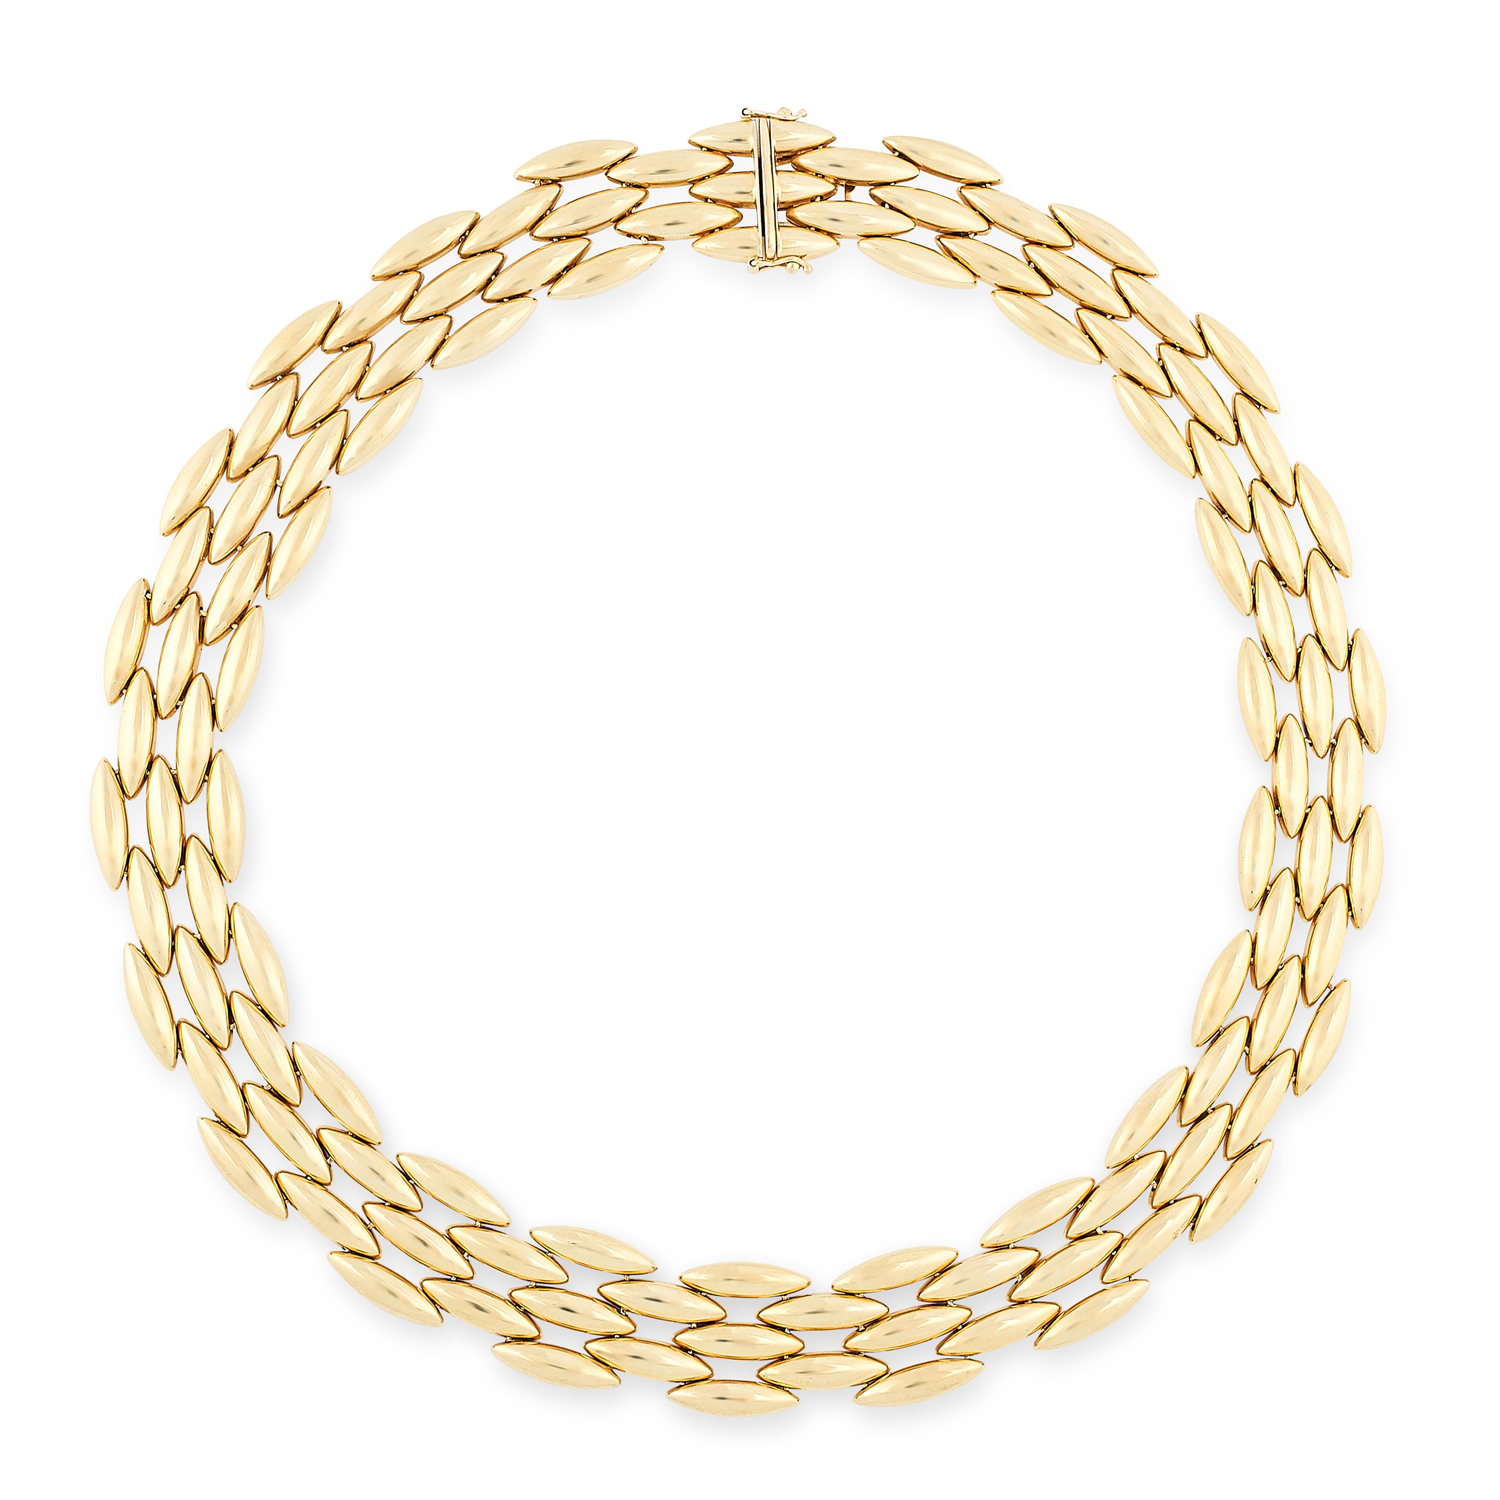 A VINTAGE GENTIANE NECKLACE, CARTIER in 18ct yellow gold, comprising rows of alternating articulated